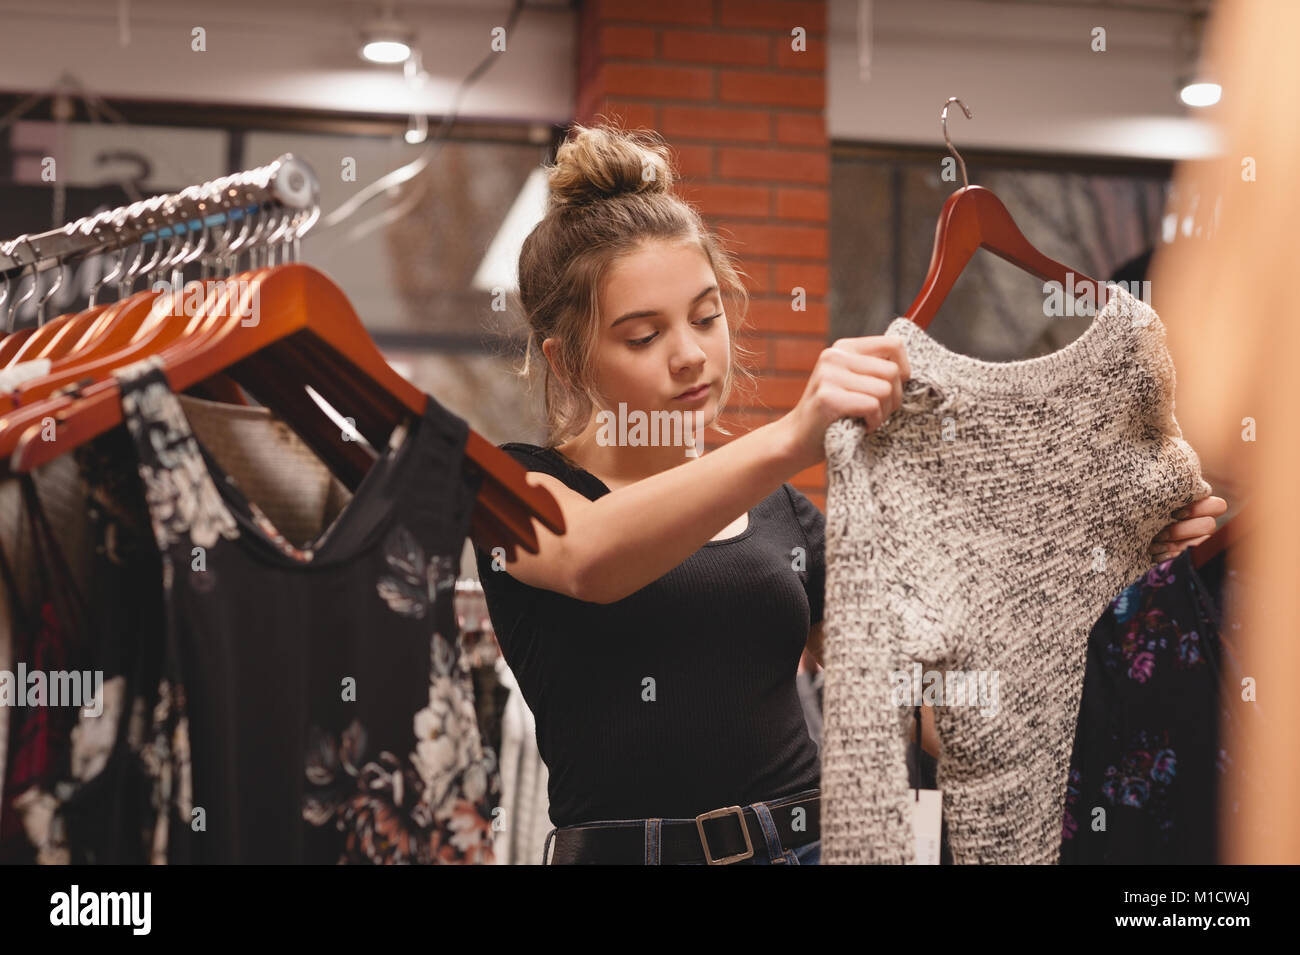 Beautiful woman selecting clothes from rack - Stock Image